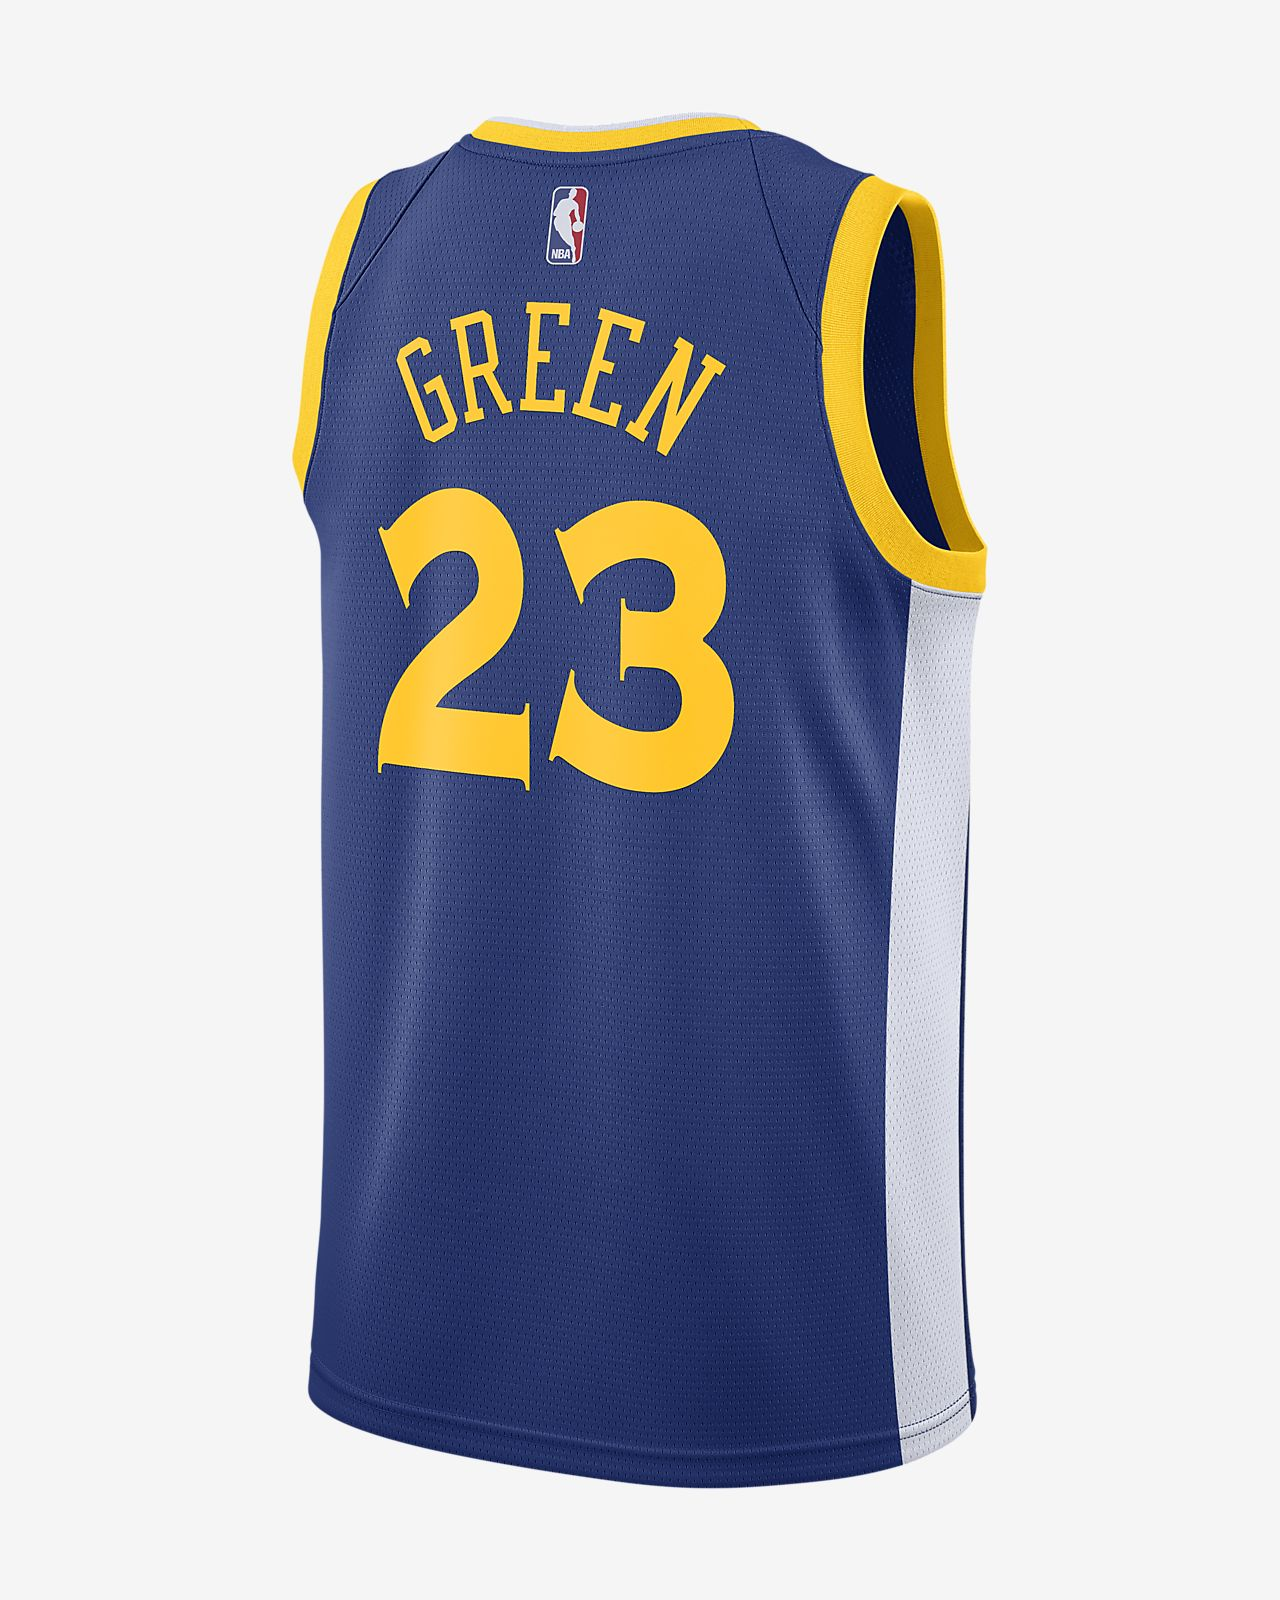 3ba46487c7d8b ... royal road replica jersey 33348 6fa1c; top quality draymond green icon  edition swingman golden state warriors mens nike nba connected jersey 22536